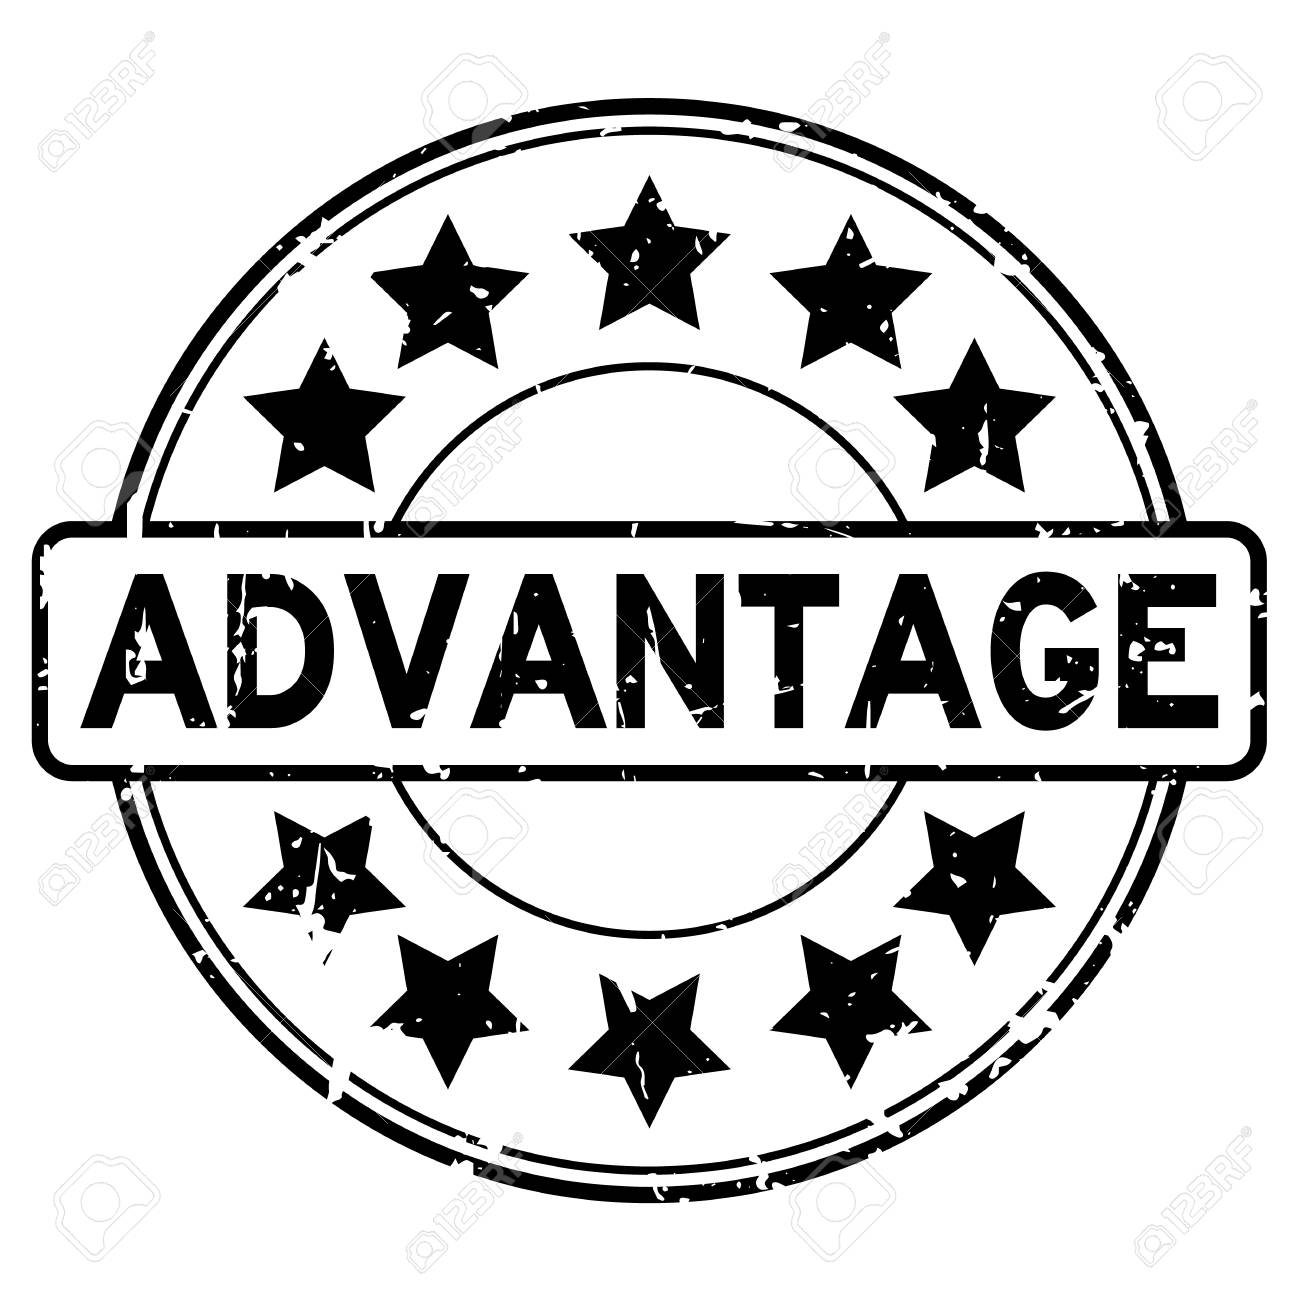 grunge black advantage with star icon round rubber seal stamp royalty free cliparts vectors and stock illustration image 85502618 grunge black advantage with star icon round rubber seal stamp